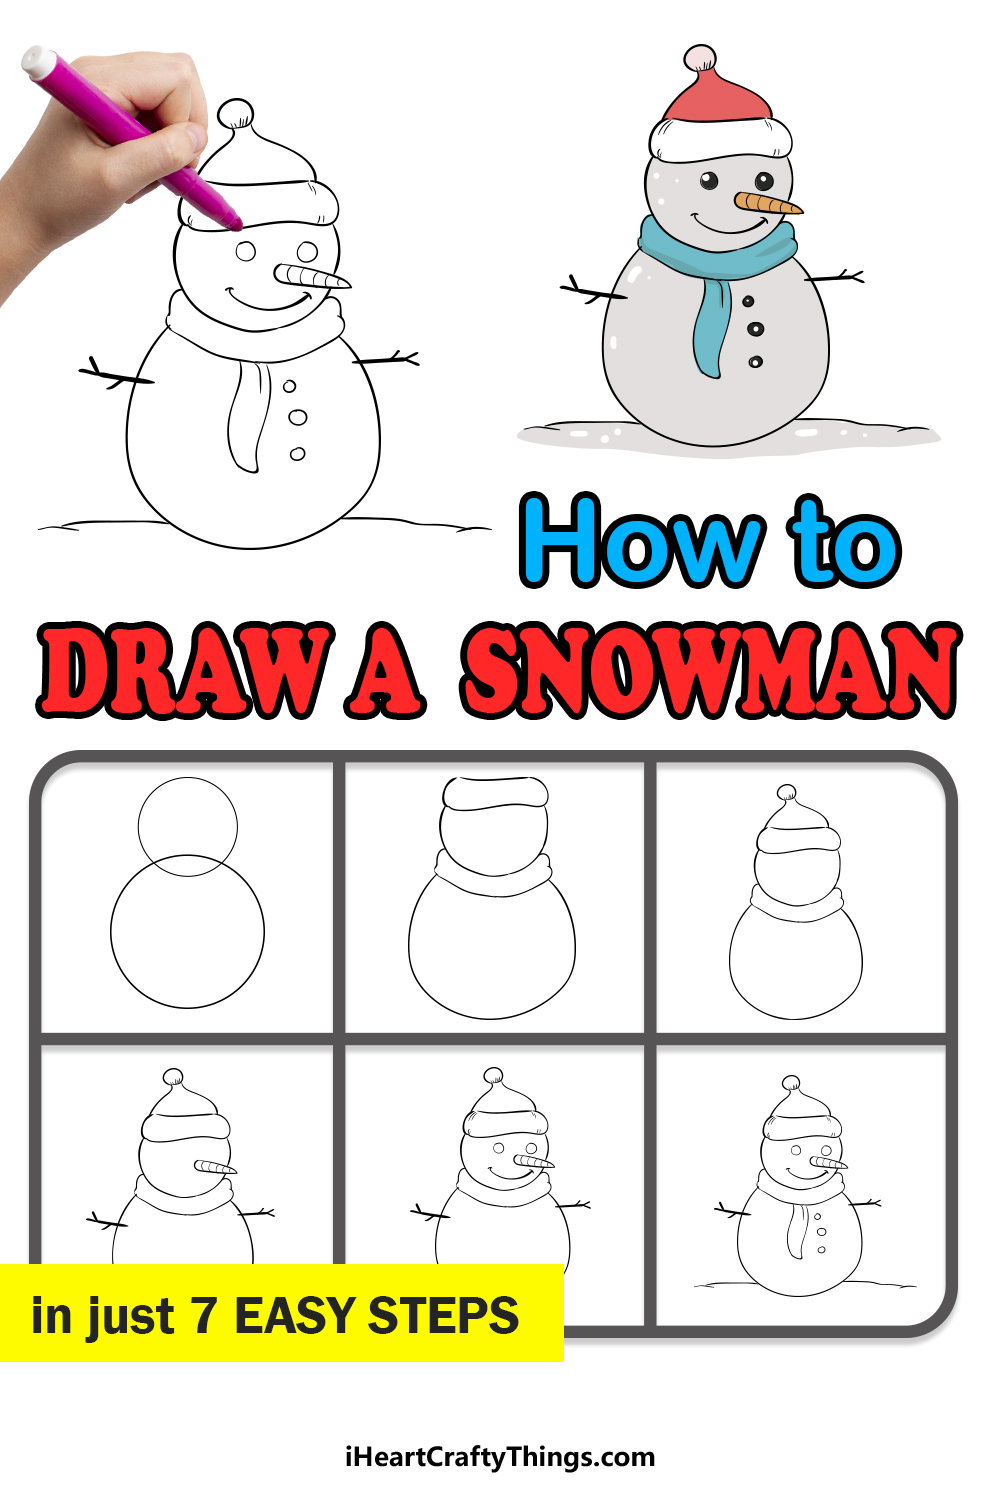 how to draw a snowman in 7 easy steps